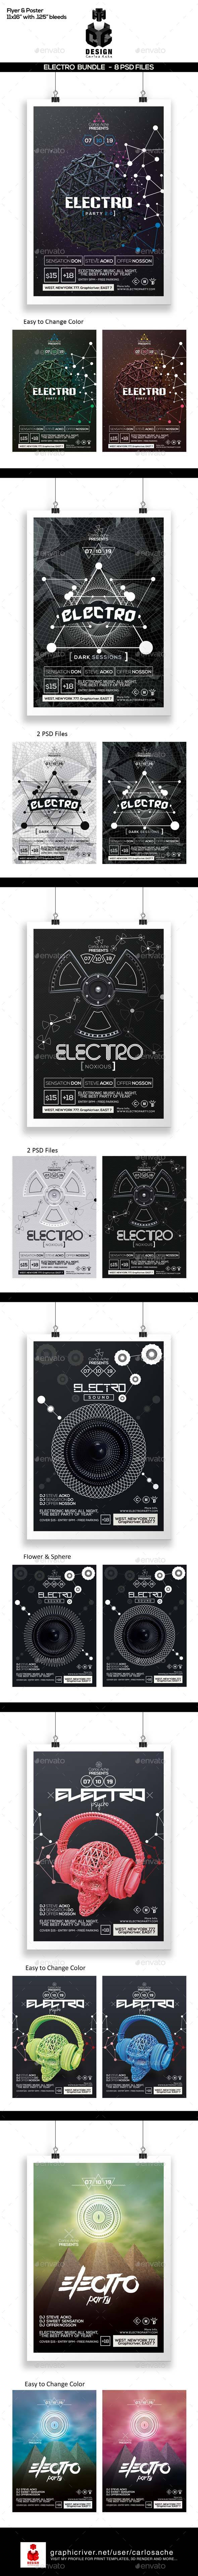 Electro Bundle Poster & Flyer Templates  - Clubs & Parties Events